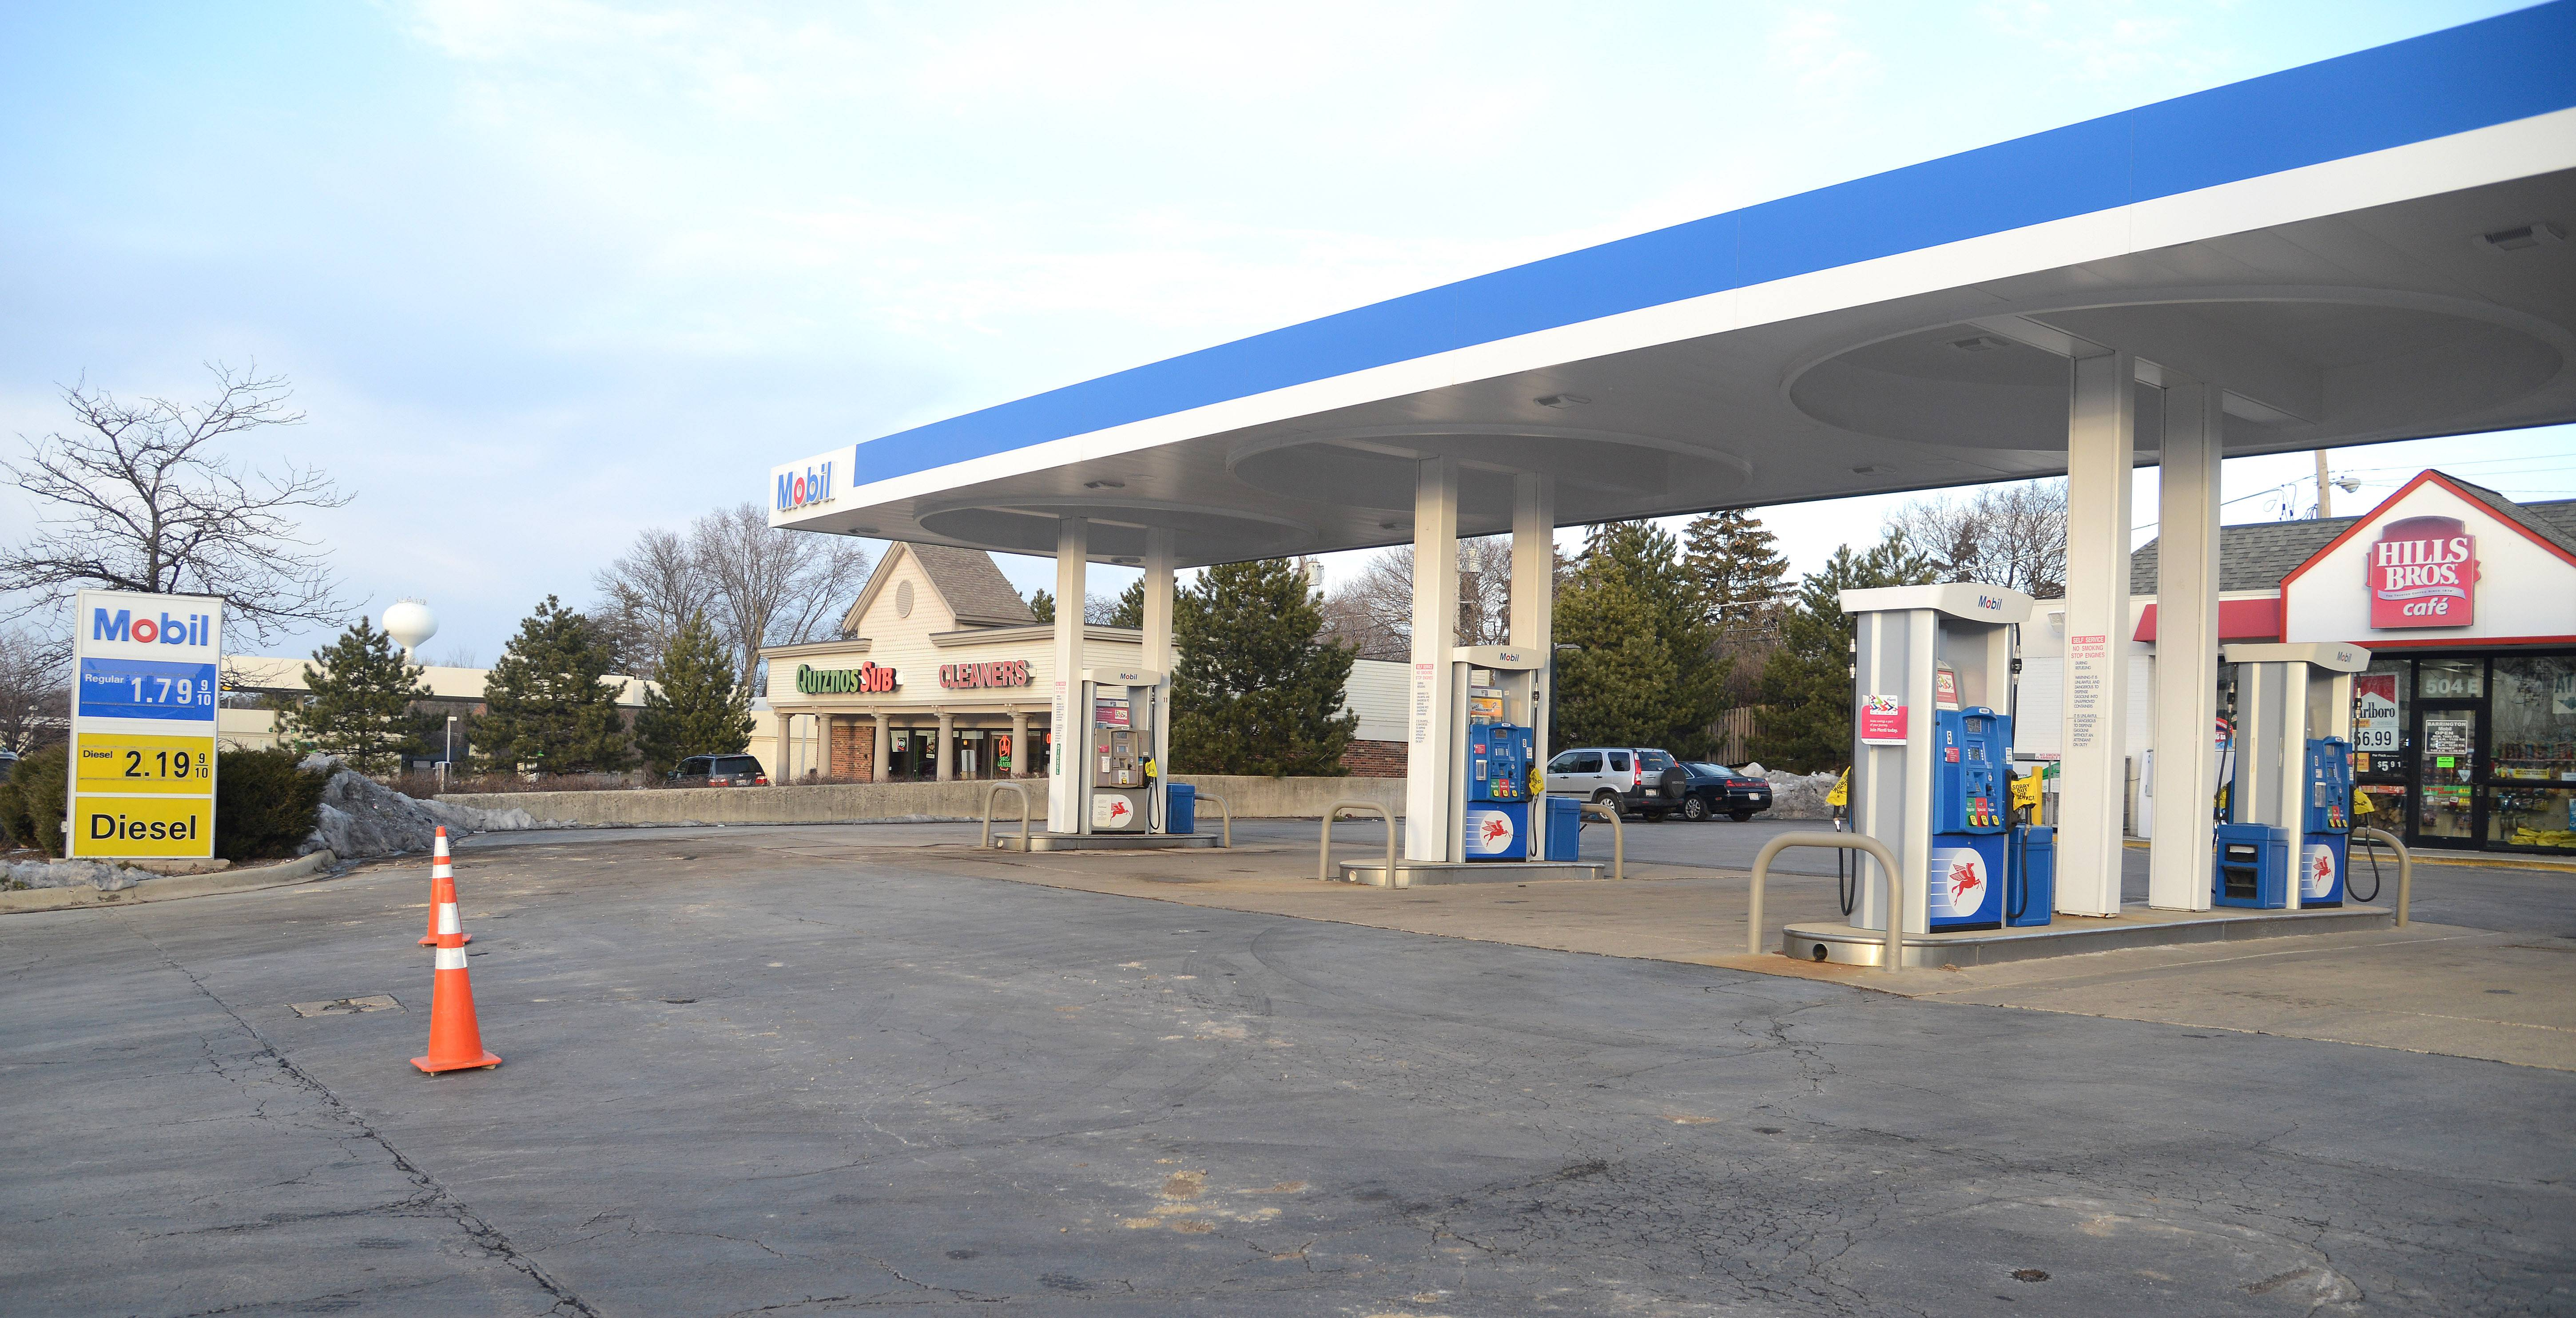 The Illinois attorney general's office is suing the owner and operator of the Mobil station in downtown Barrington over a fuel leak discovered late last month. Officials say gasoline seeped into the village's sanitary sewer but did not threaten the water supply.